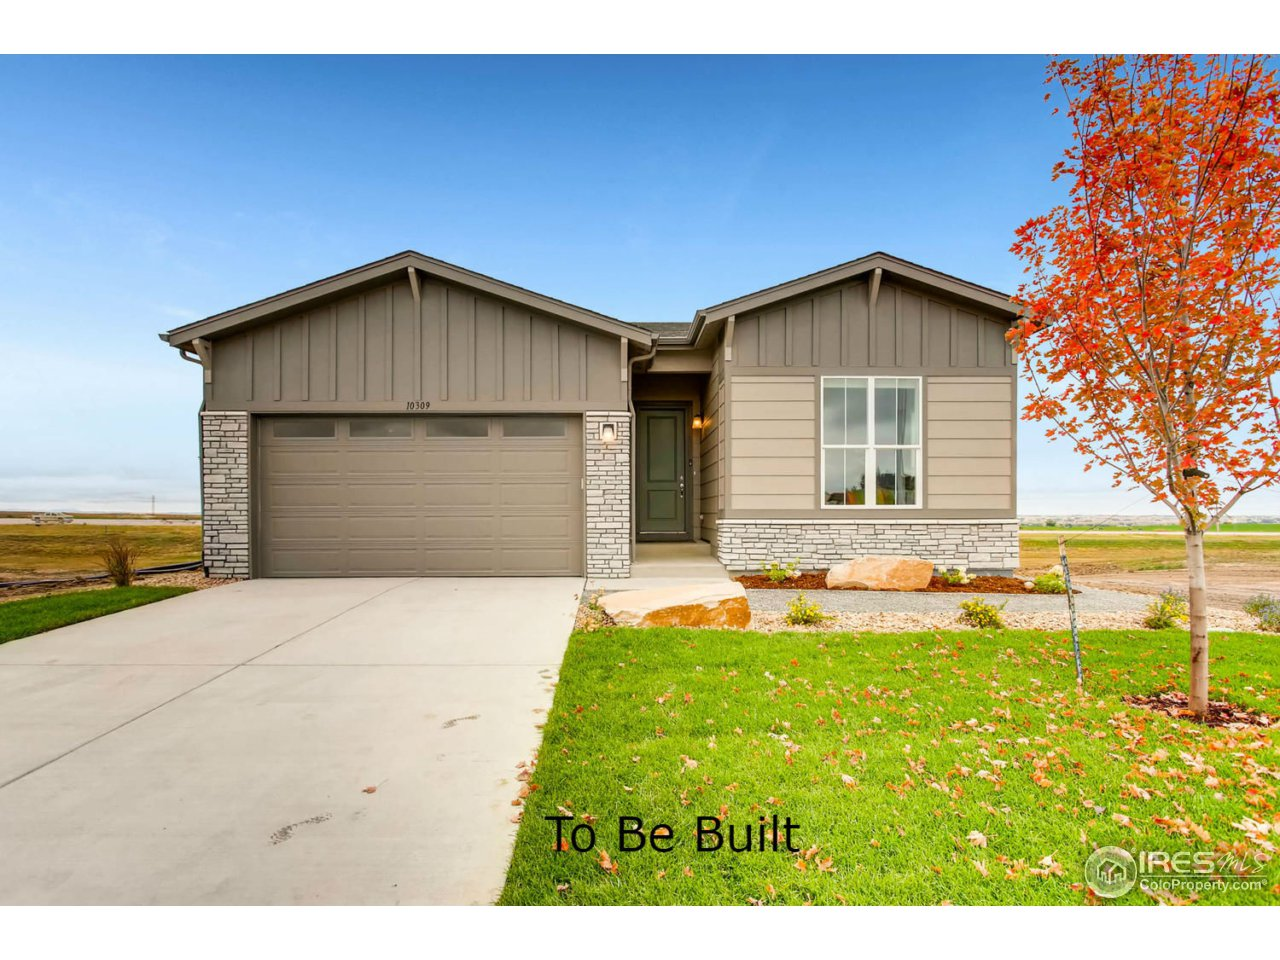 1115 102nd Ave, Greeley, CO 80634